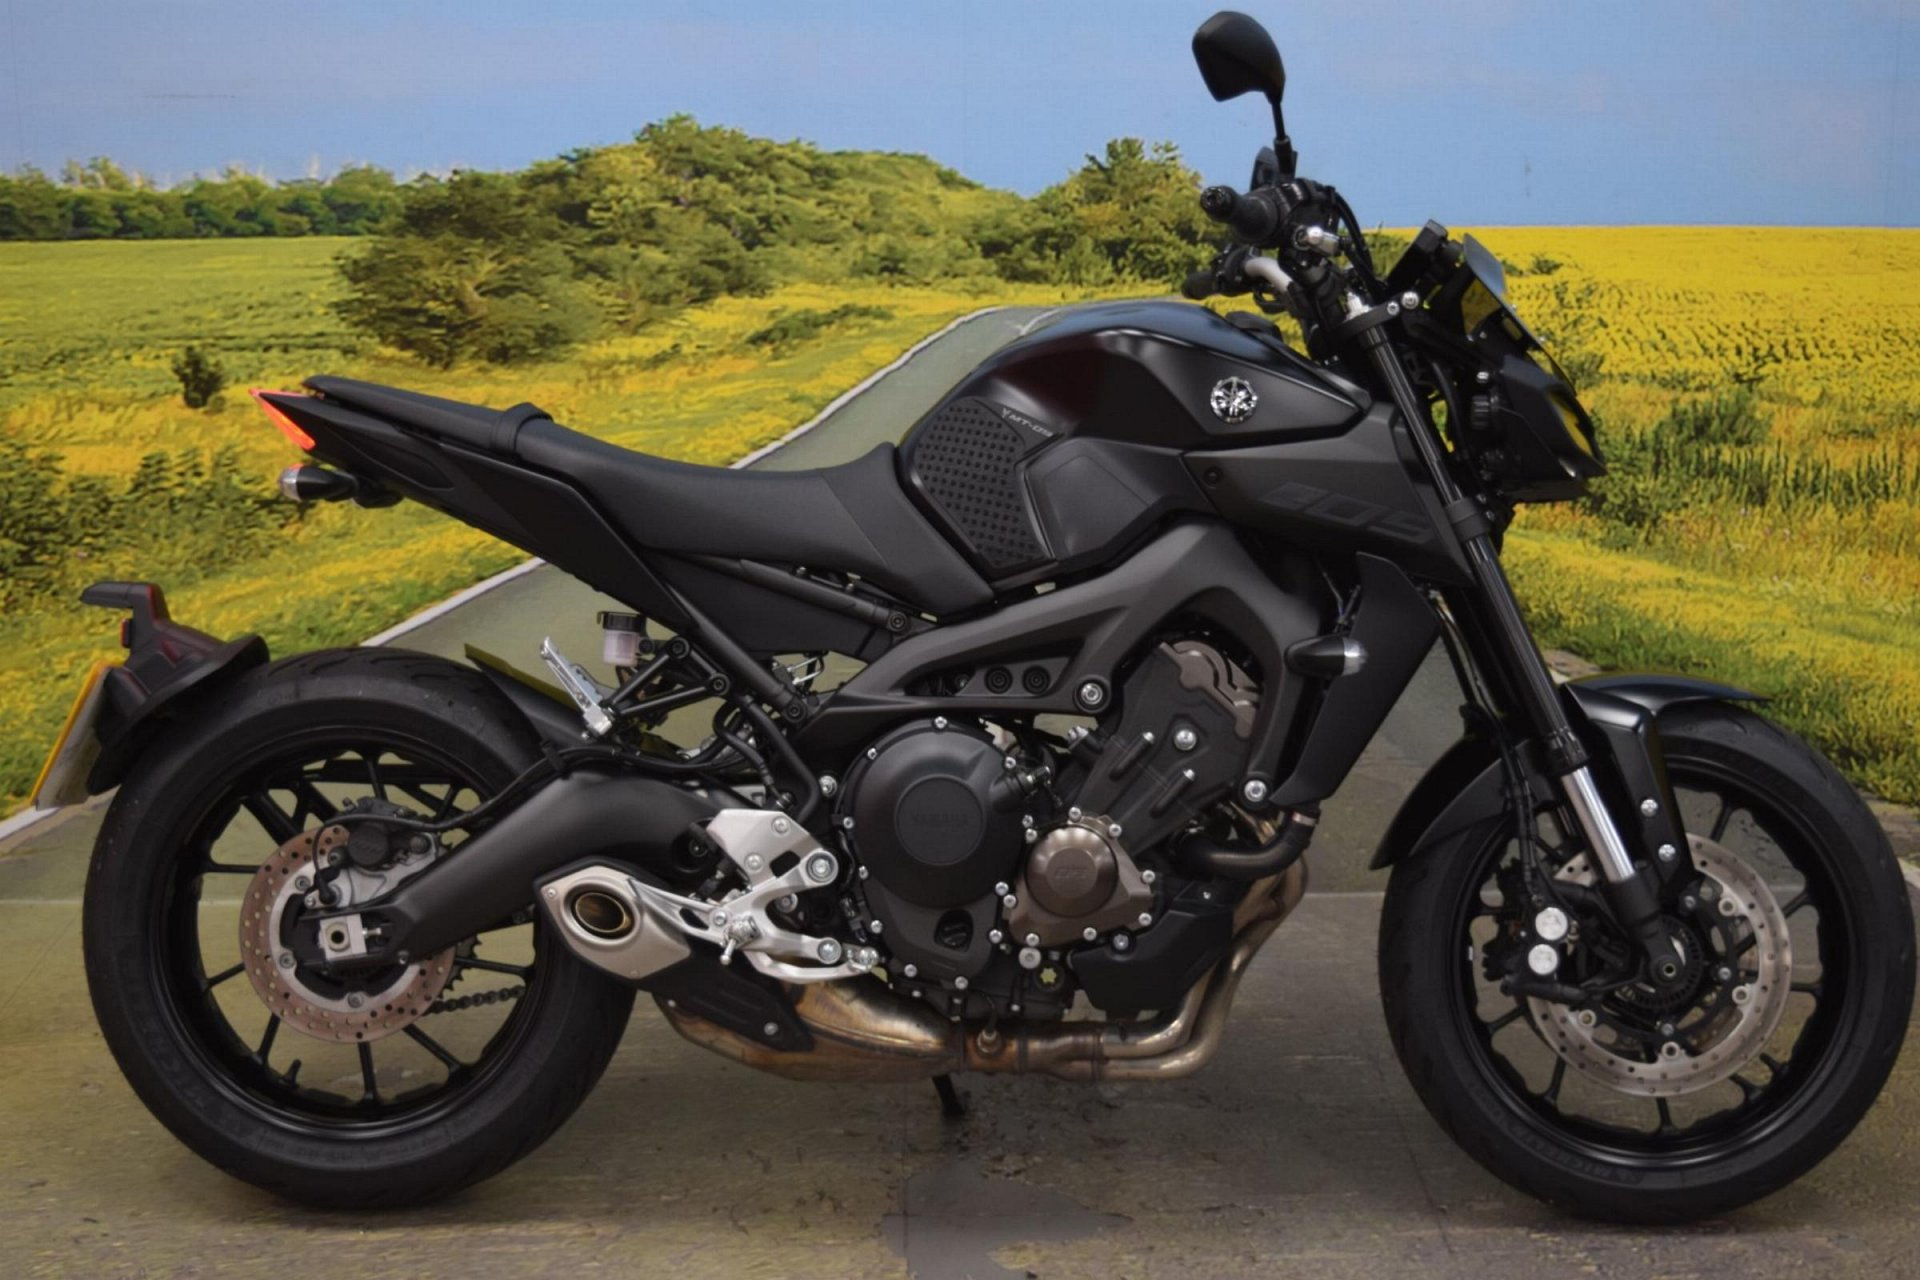 2019 Yamaha MT 09 for sale in Staffordshire